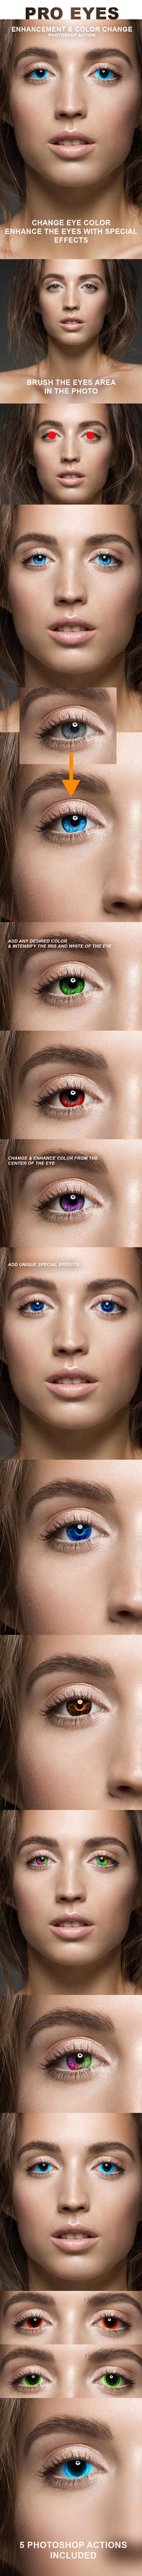 Pro Eyes Enhancement and Color Change - PS Actions by ArtoriusGothicus